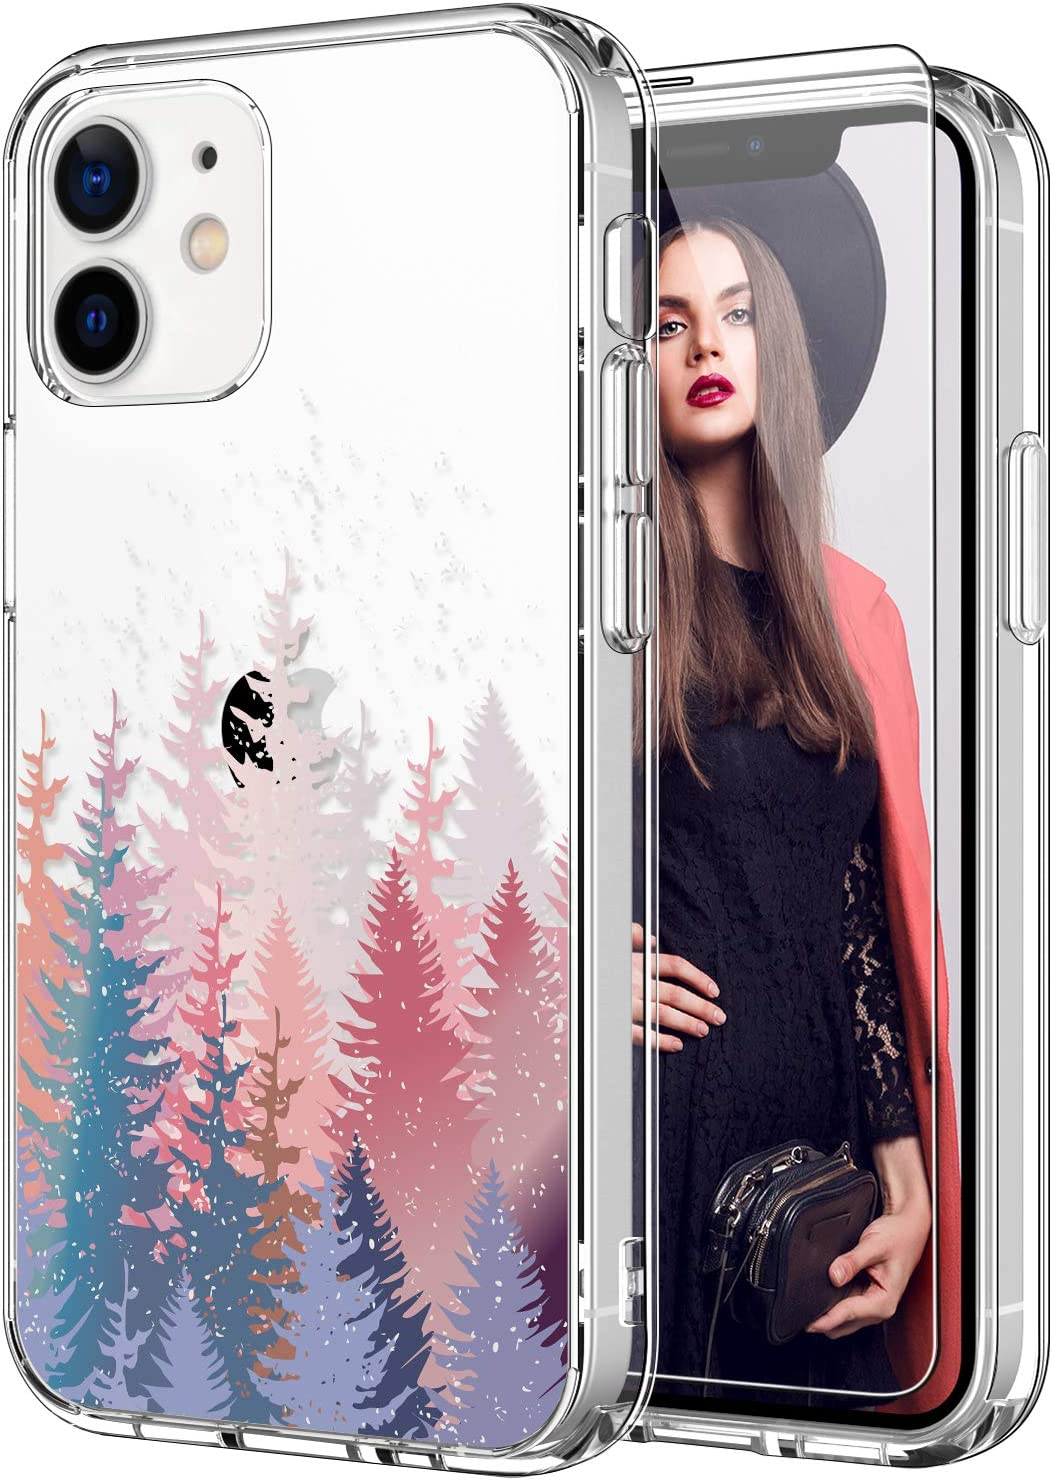 ICEDIO for iPhone 12 Mini Case with Screen Protector,Clear with Cute Trees Floral Flower Patterns for Girls Women,Shockproof Slim Fit TPU Cover Protective Phone Case for iPhone 12 Mini 5.4